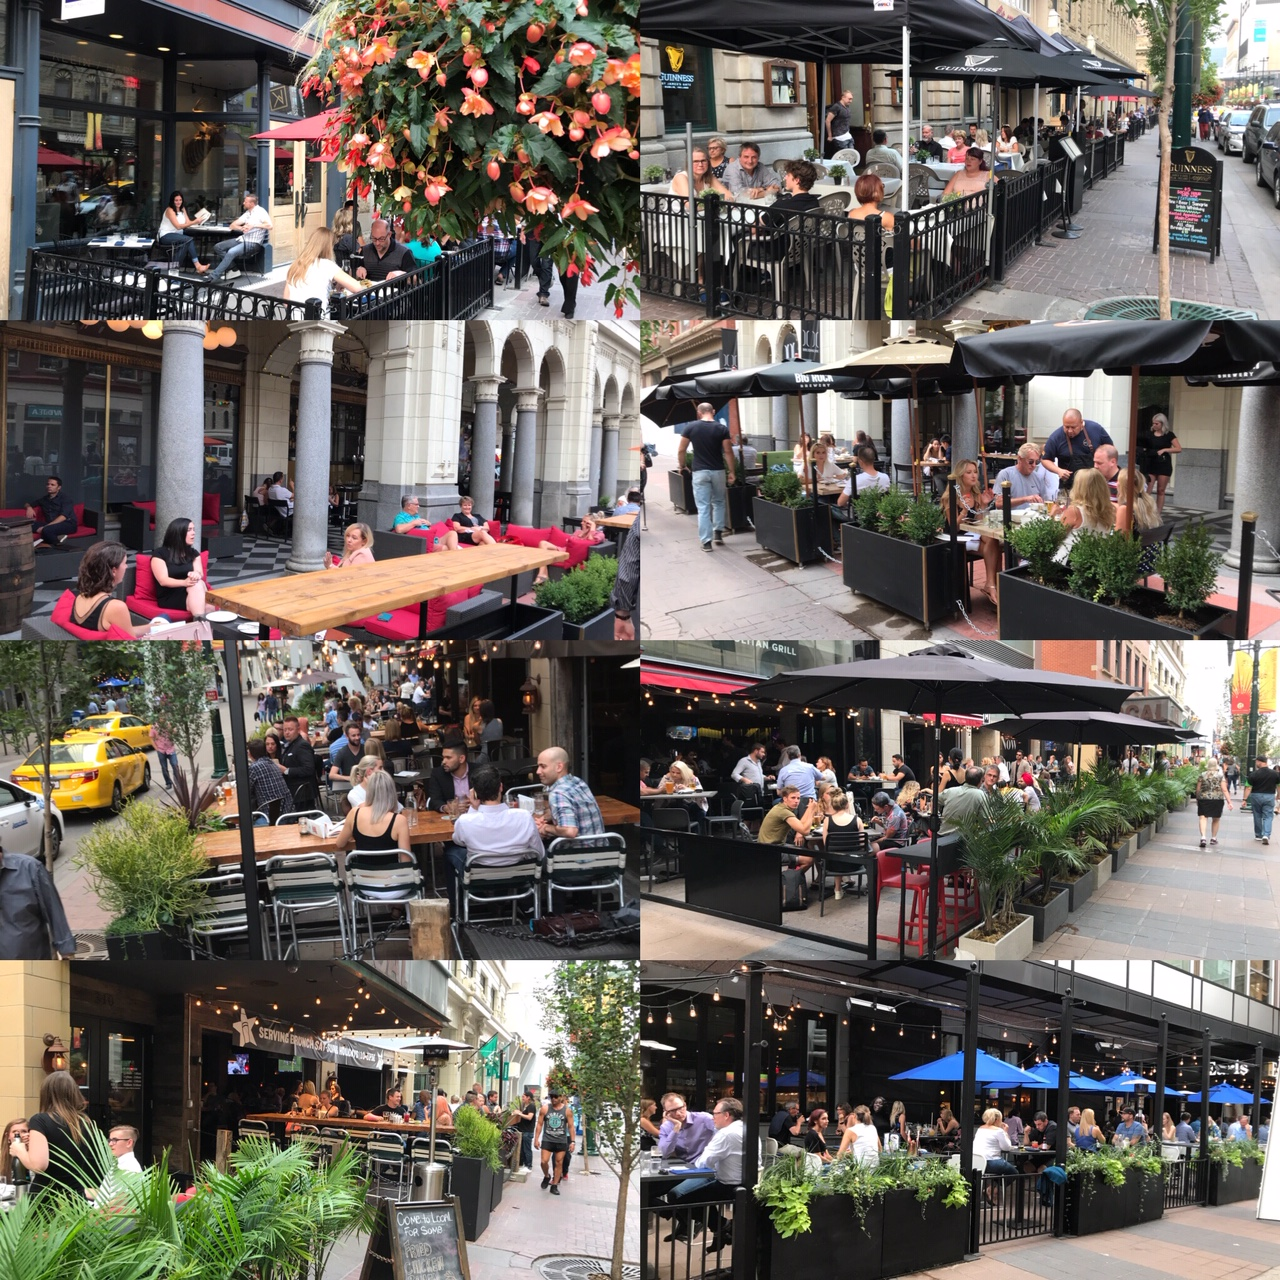 Calgary's City Centre has an amazing patio scene.